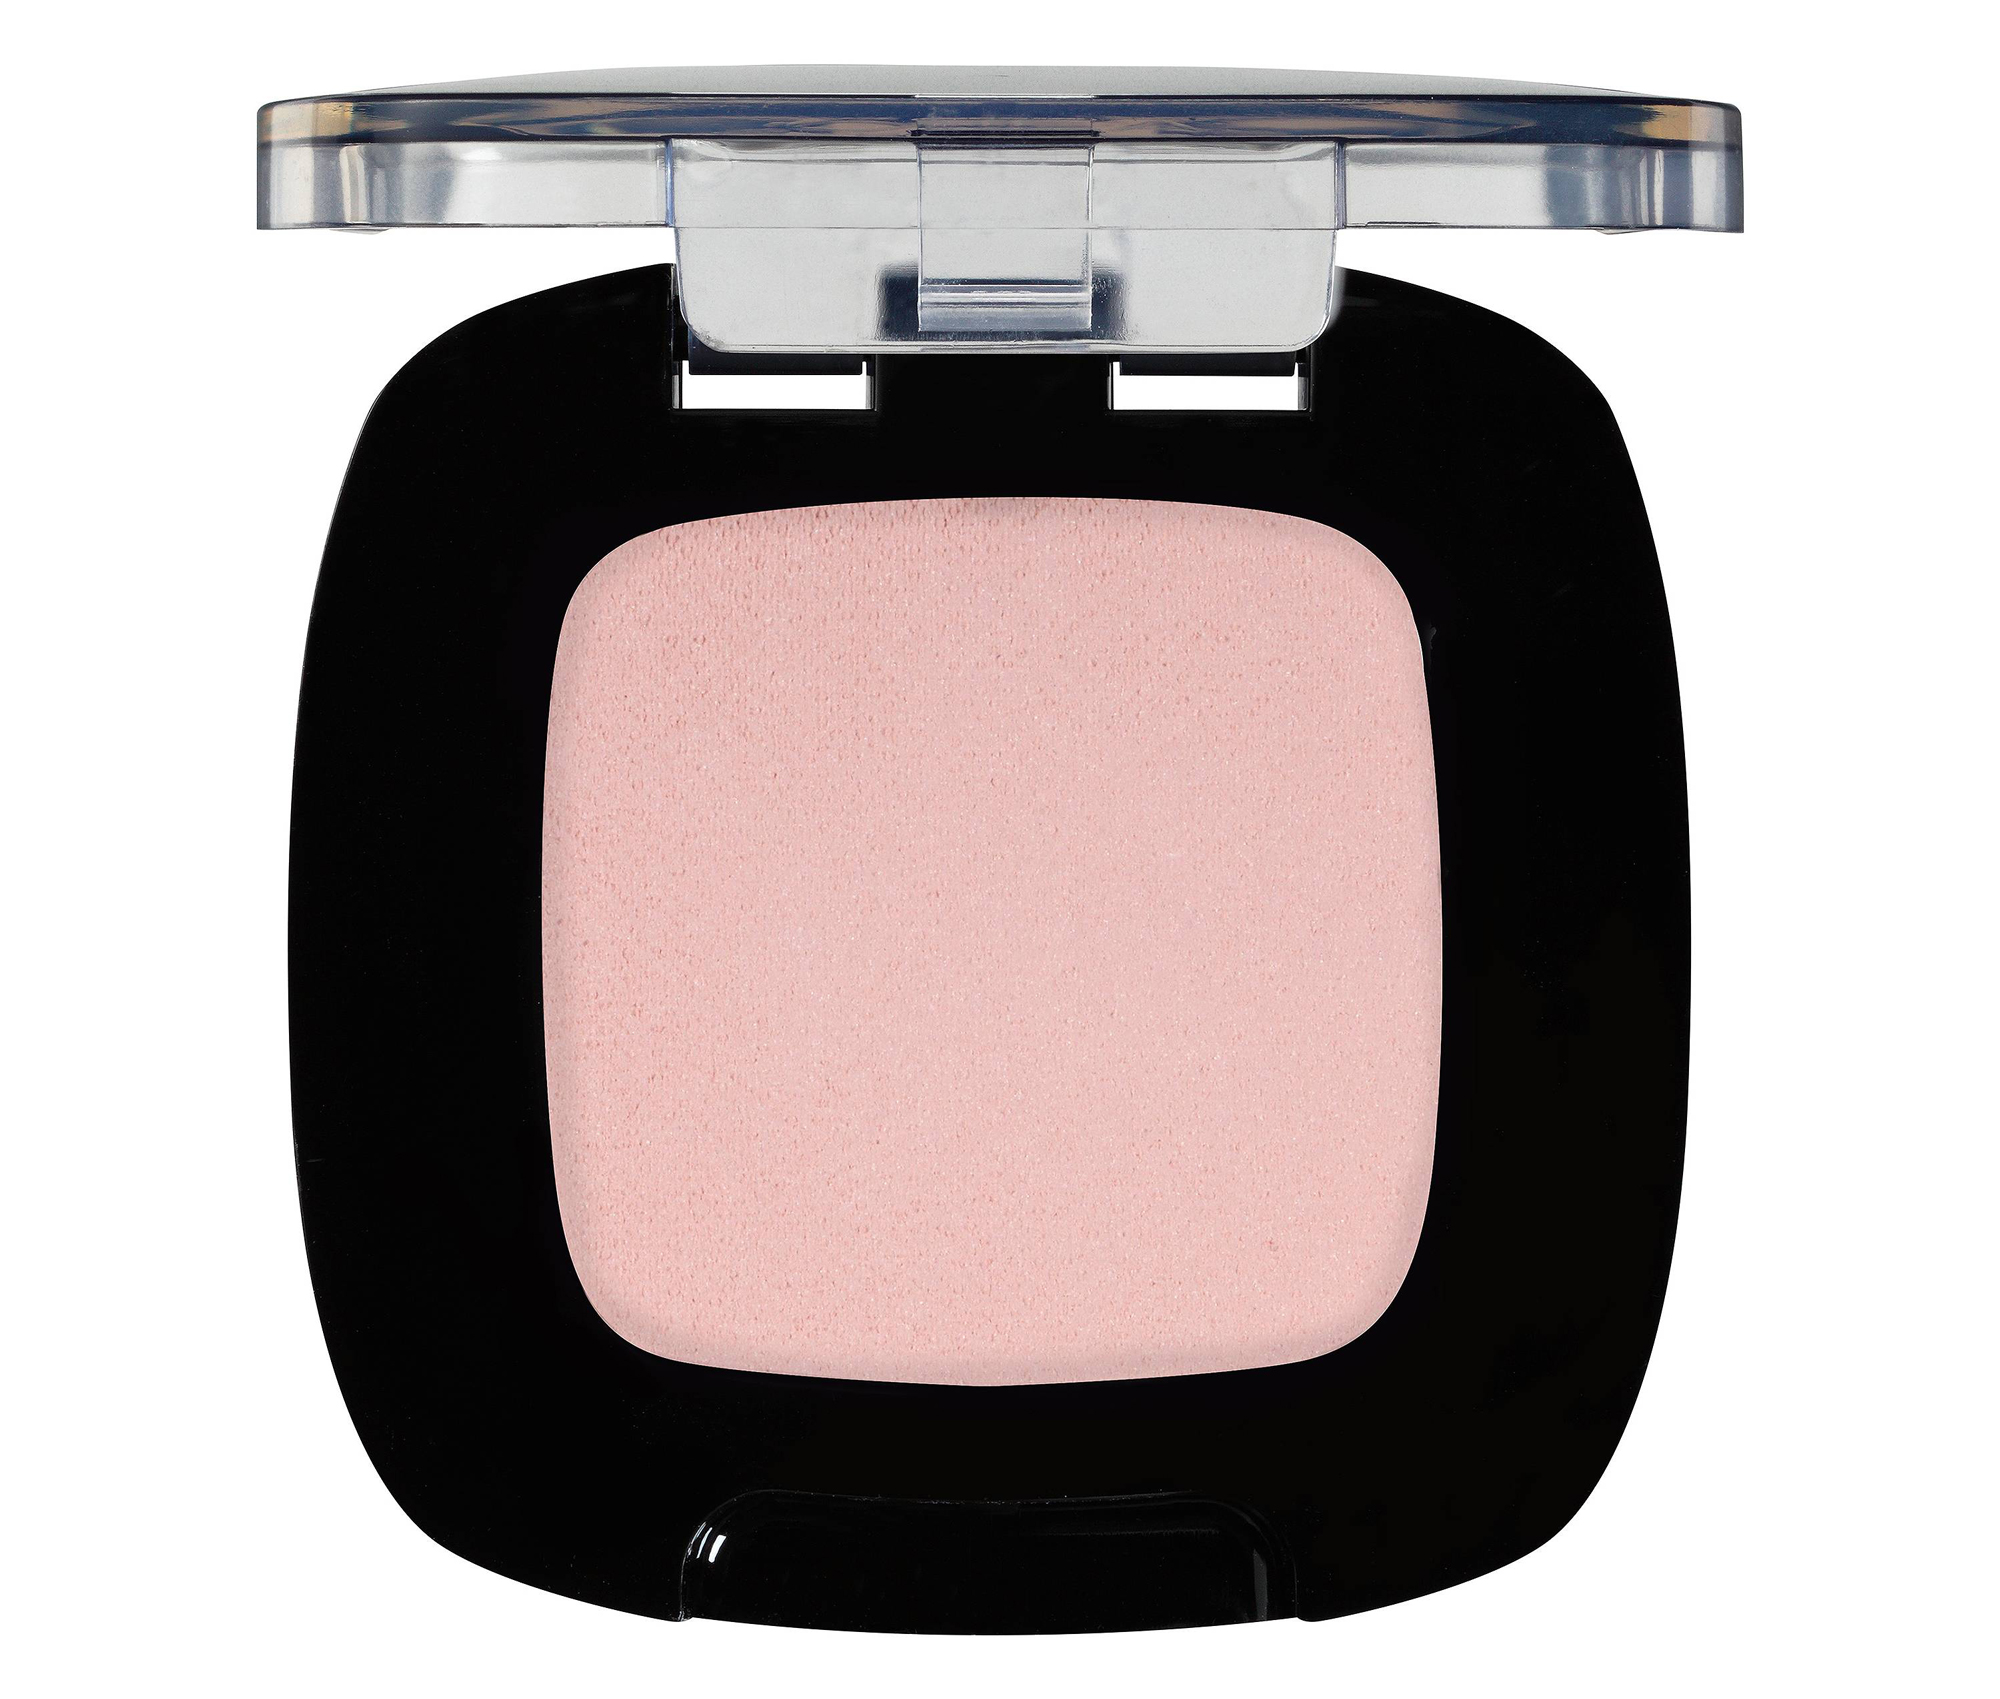 Fair Complexions: L'Oréal Paris Color Riche Monos Eyeshadow in Mademoiselle Pink